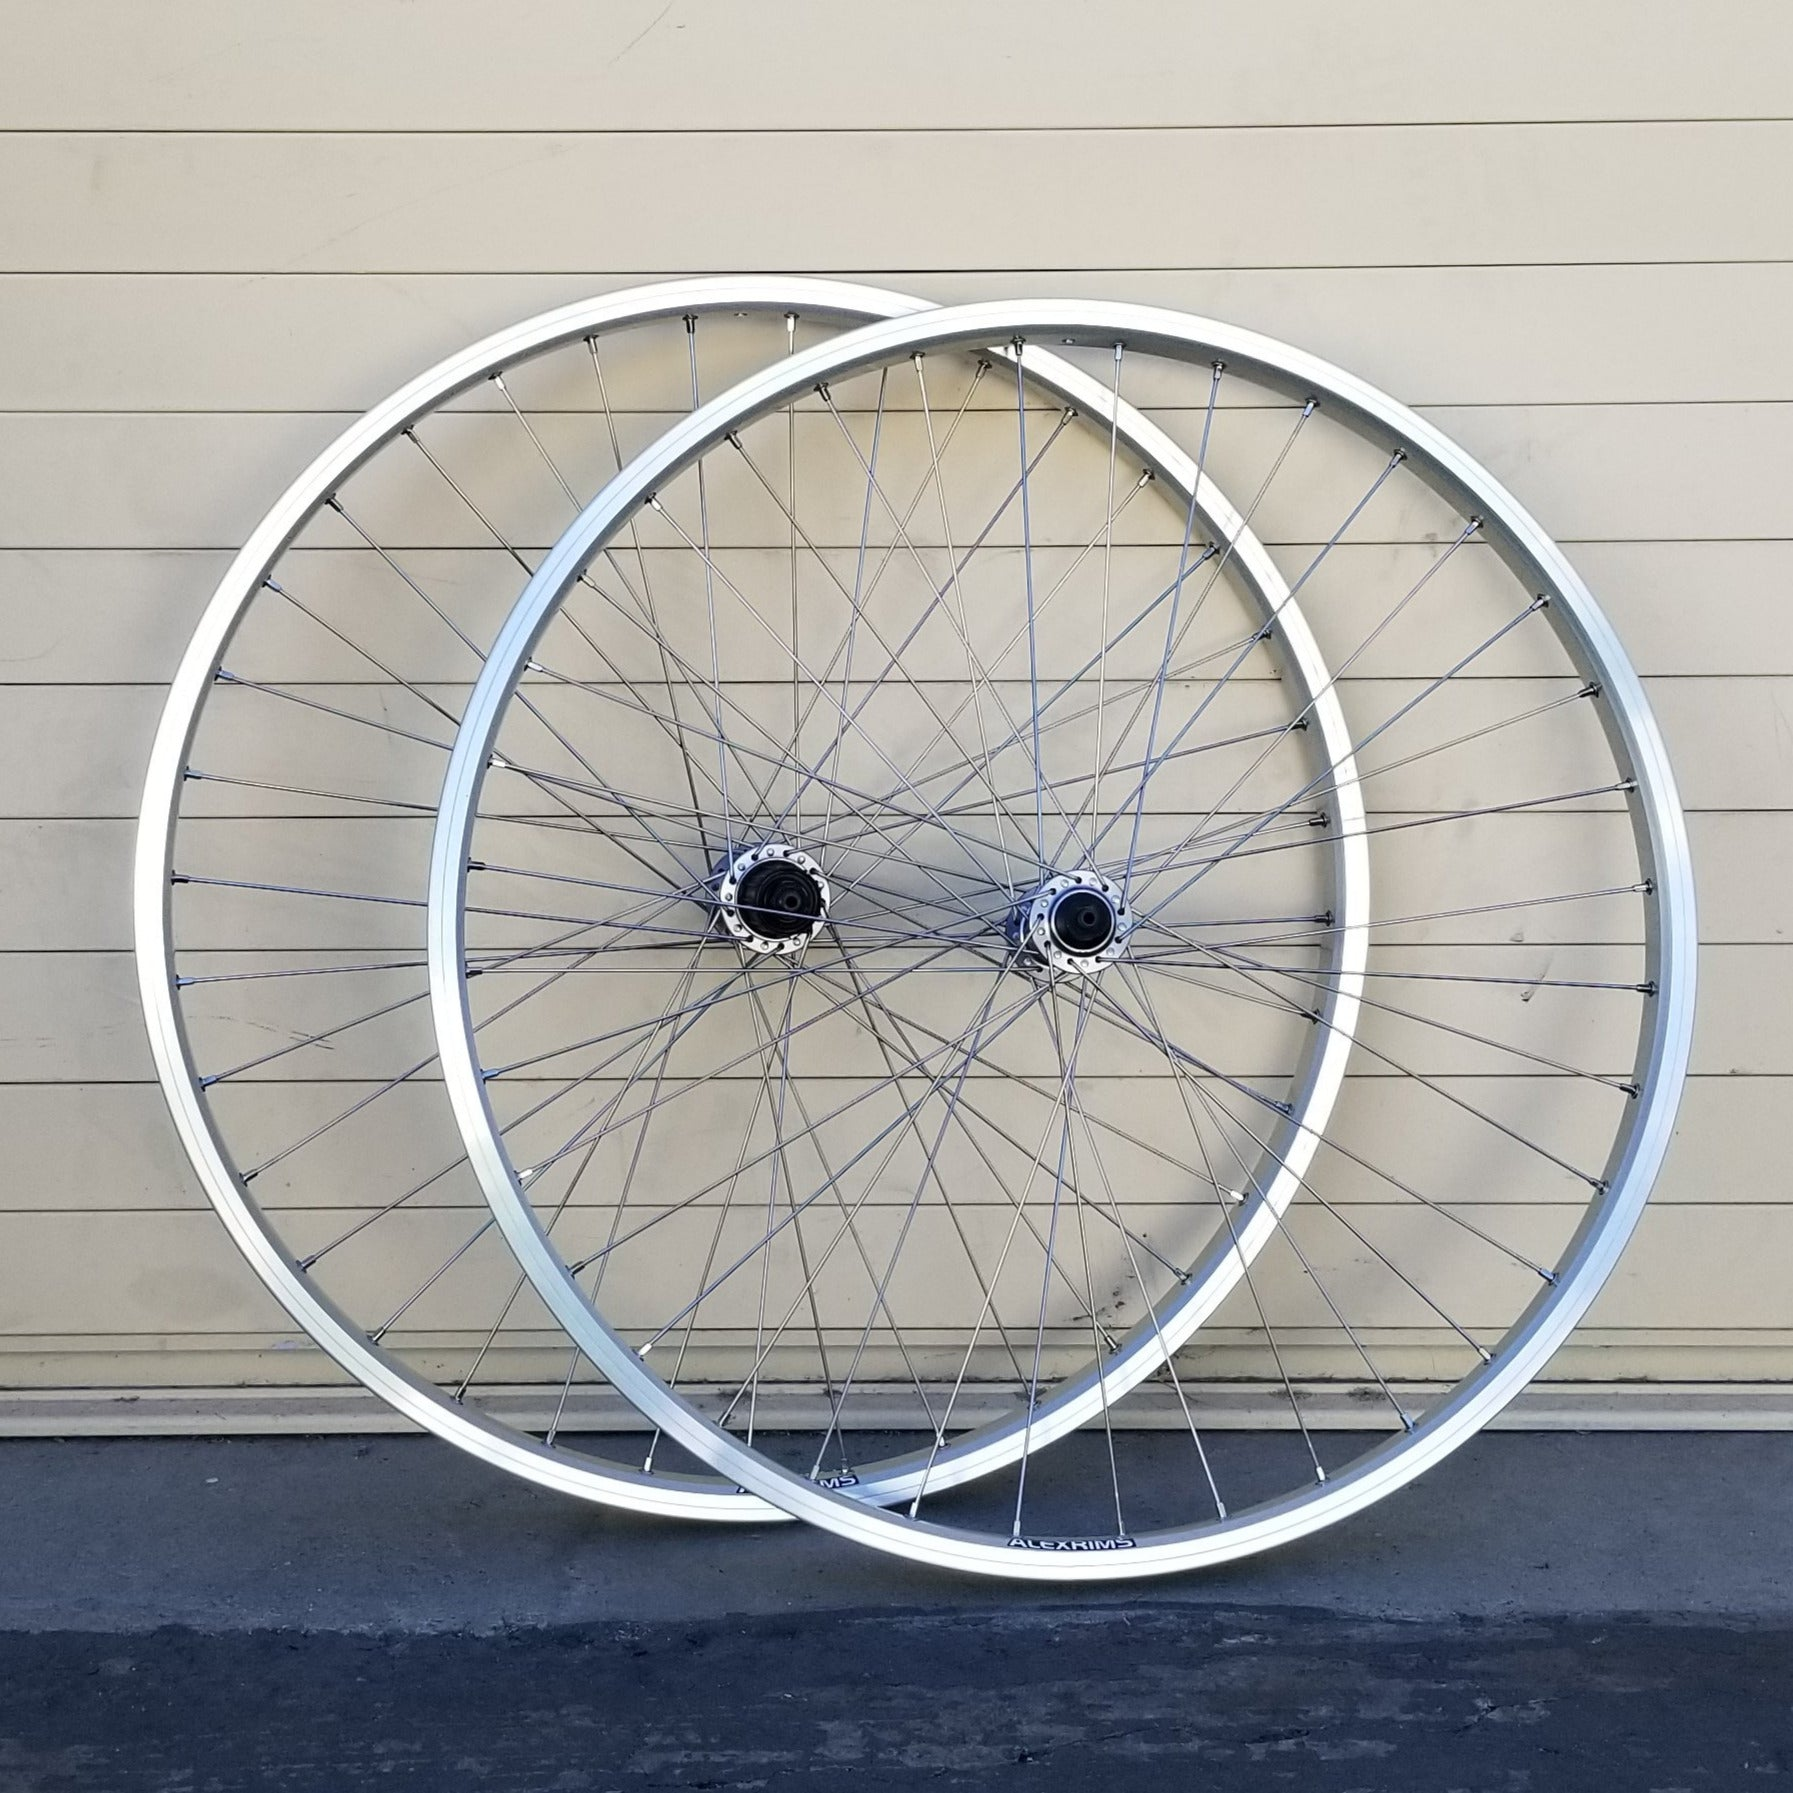 Wheelset - Velocity-Built Alex DM24 with Shimano Deore T610 hubs